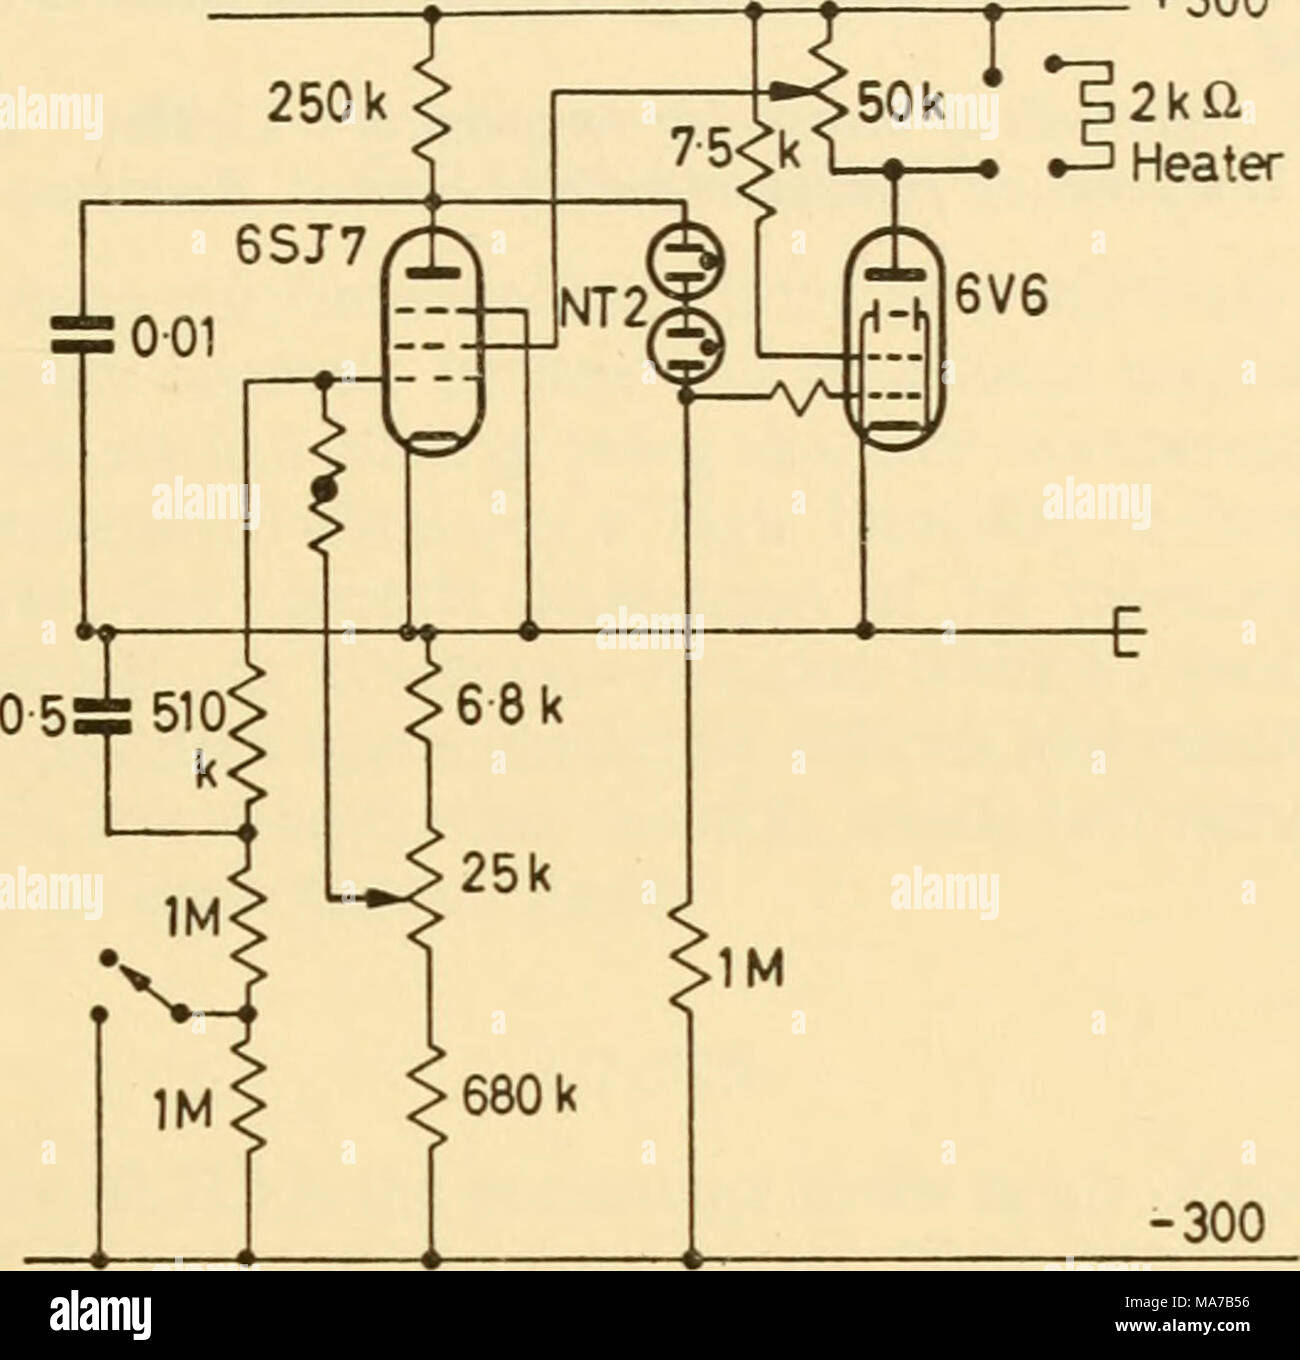 Thermistor Stock Photos Images Alamy Circuit Diagram Electronic Apparatus For Biological Research Figure 2922 Ultra Fine Control Of